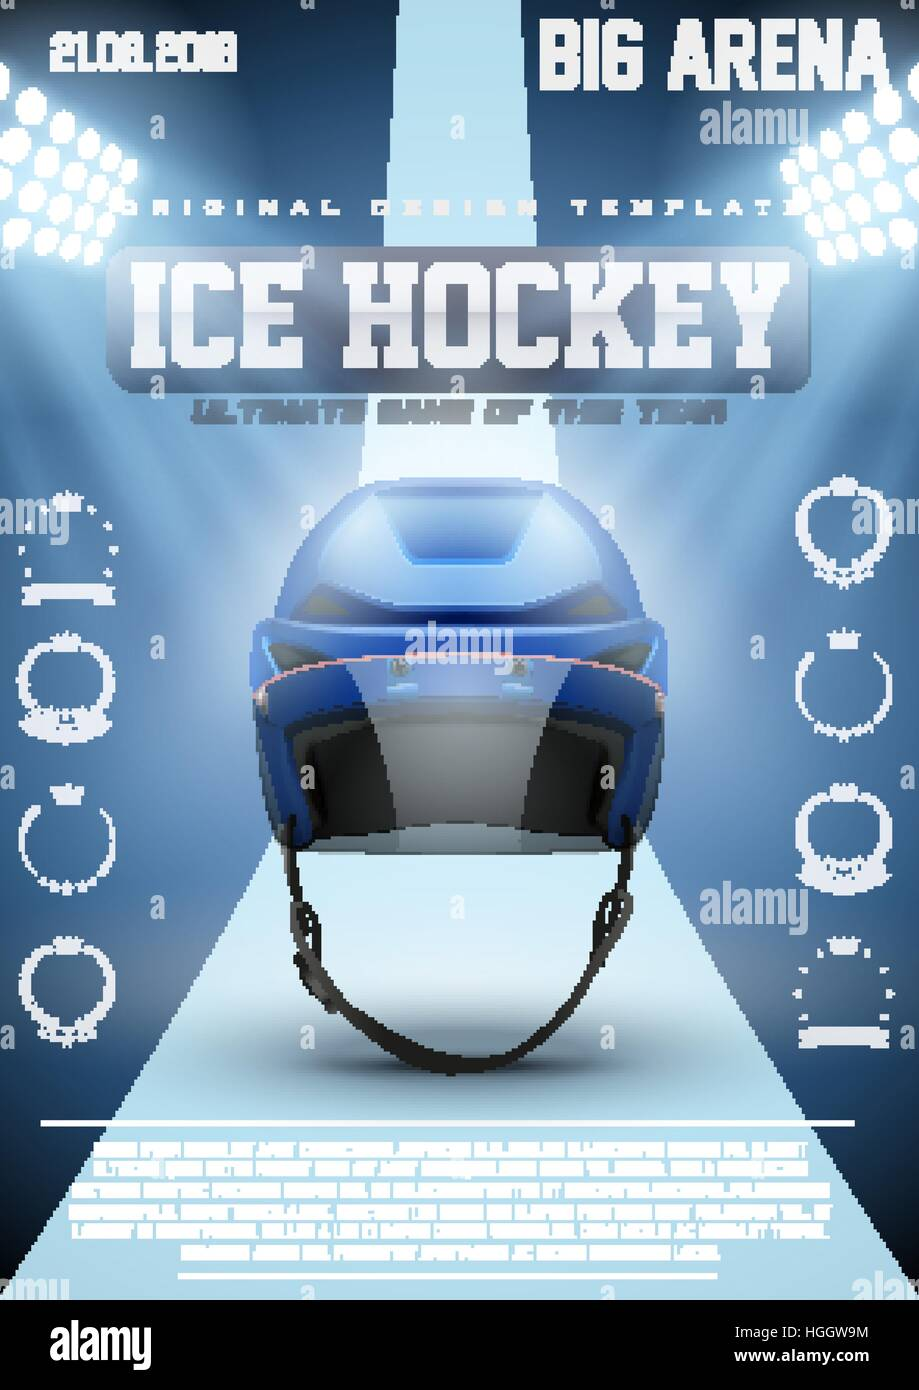 Poster Template Ice Hockey Games With Player Helmet Cup And Tournament Advertising Sport Event Announcement Vector Illustration